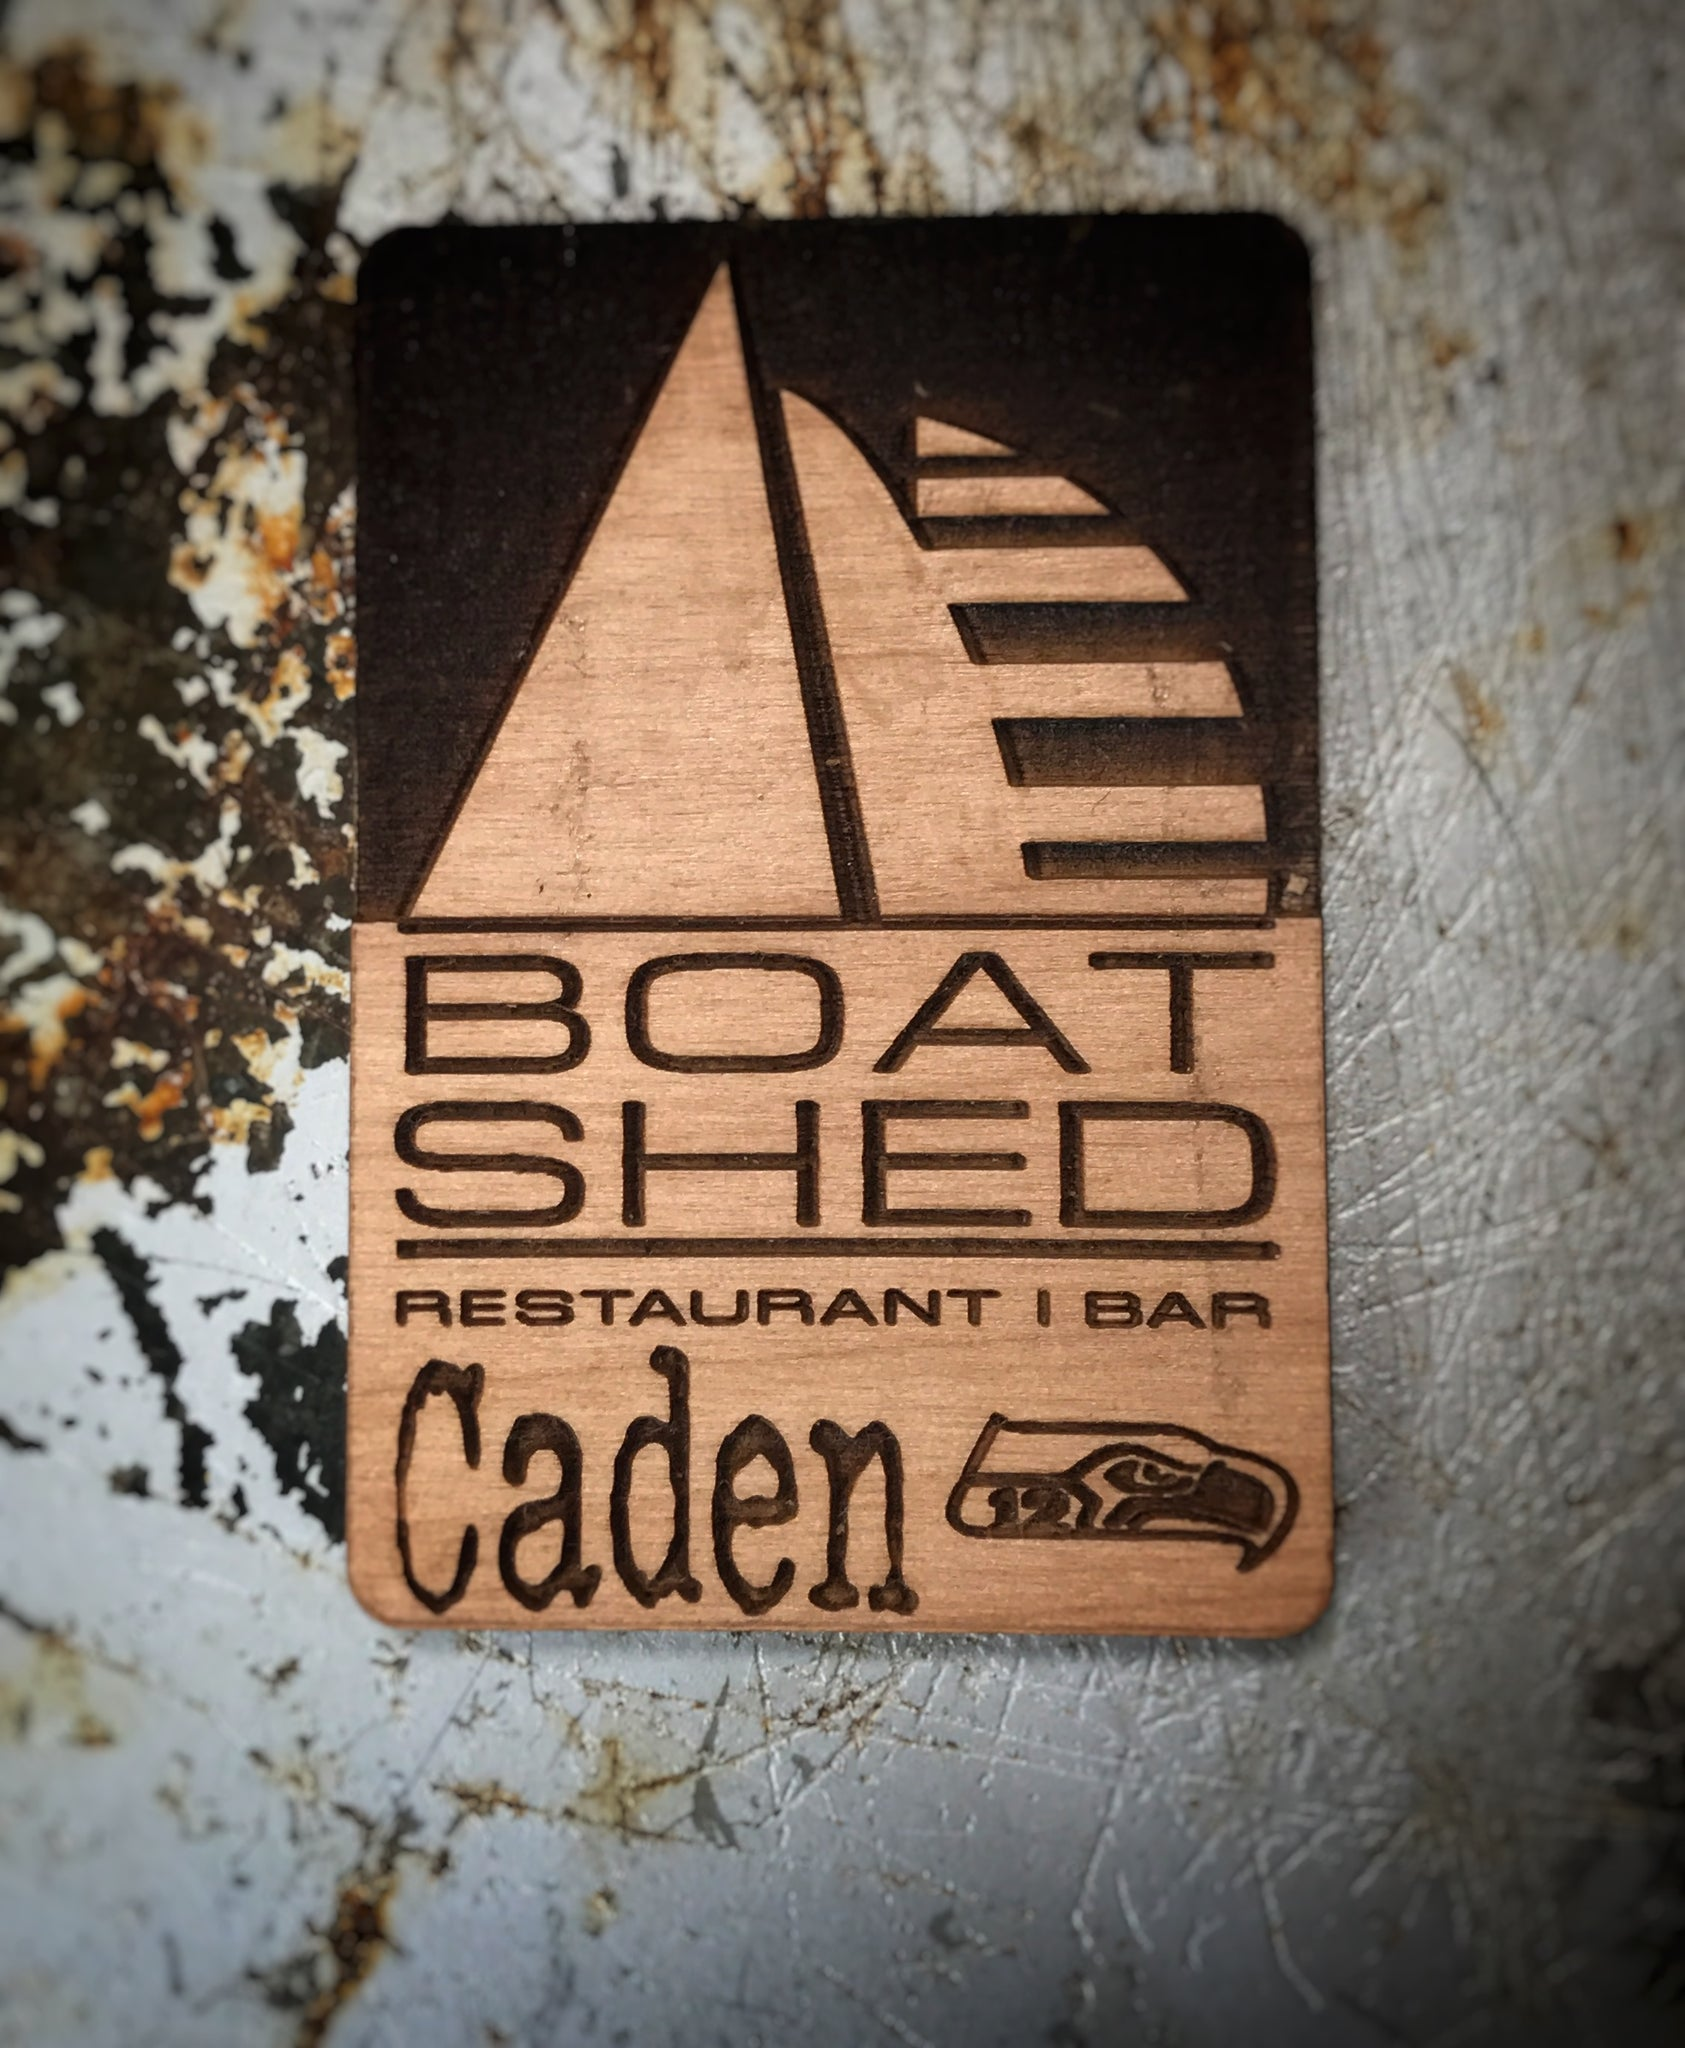 Boat Shed Manette - Personalized Name Badge (Intaglio)